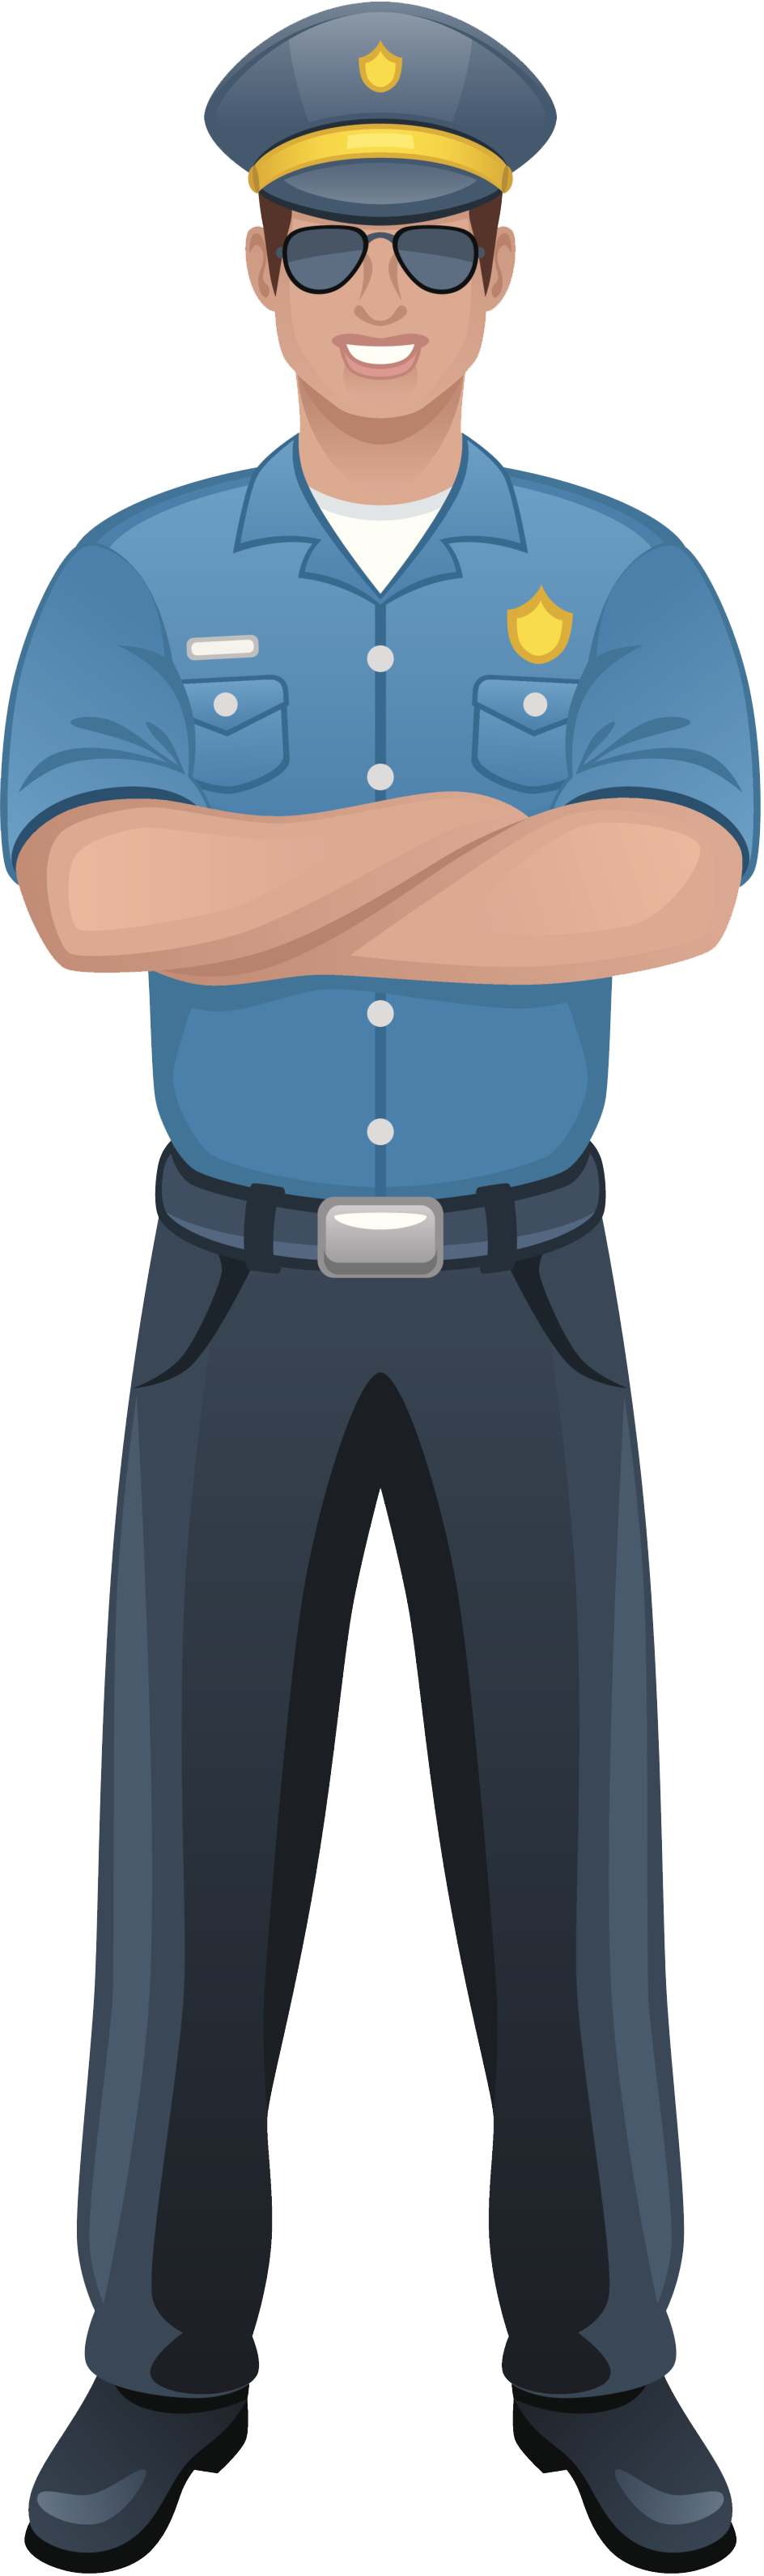 Police clip art clipart clipart